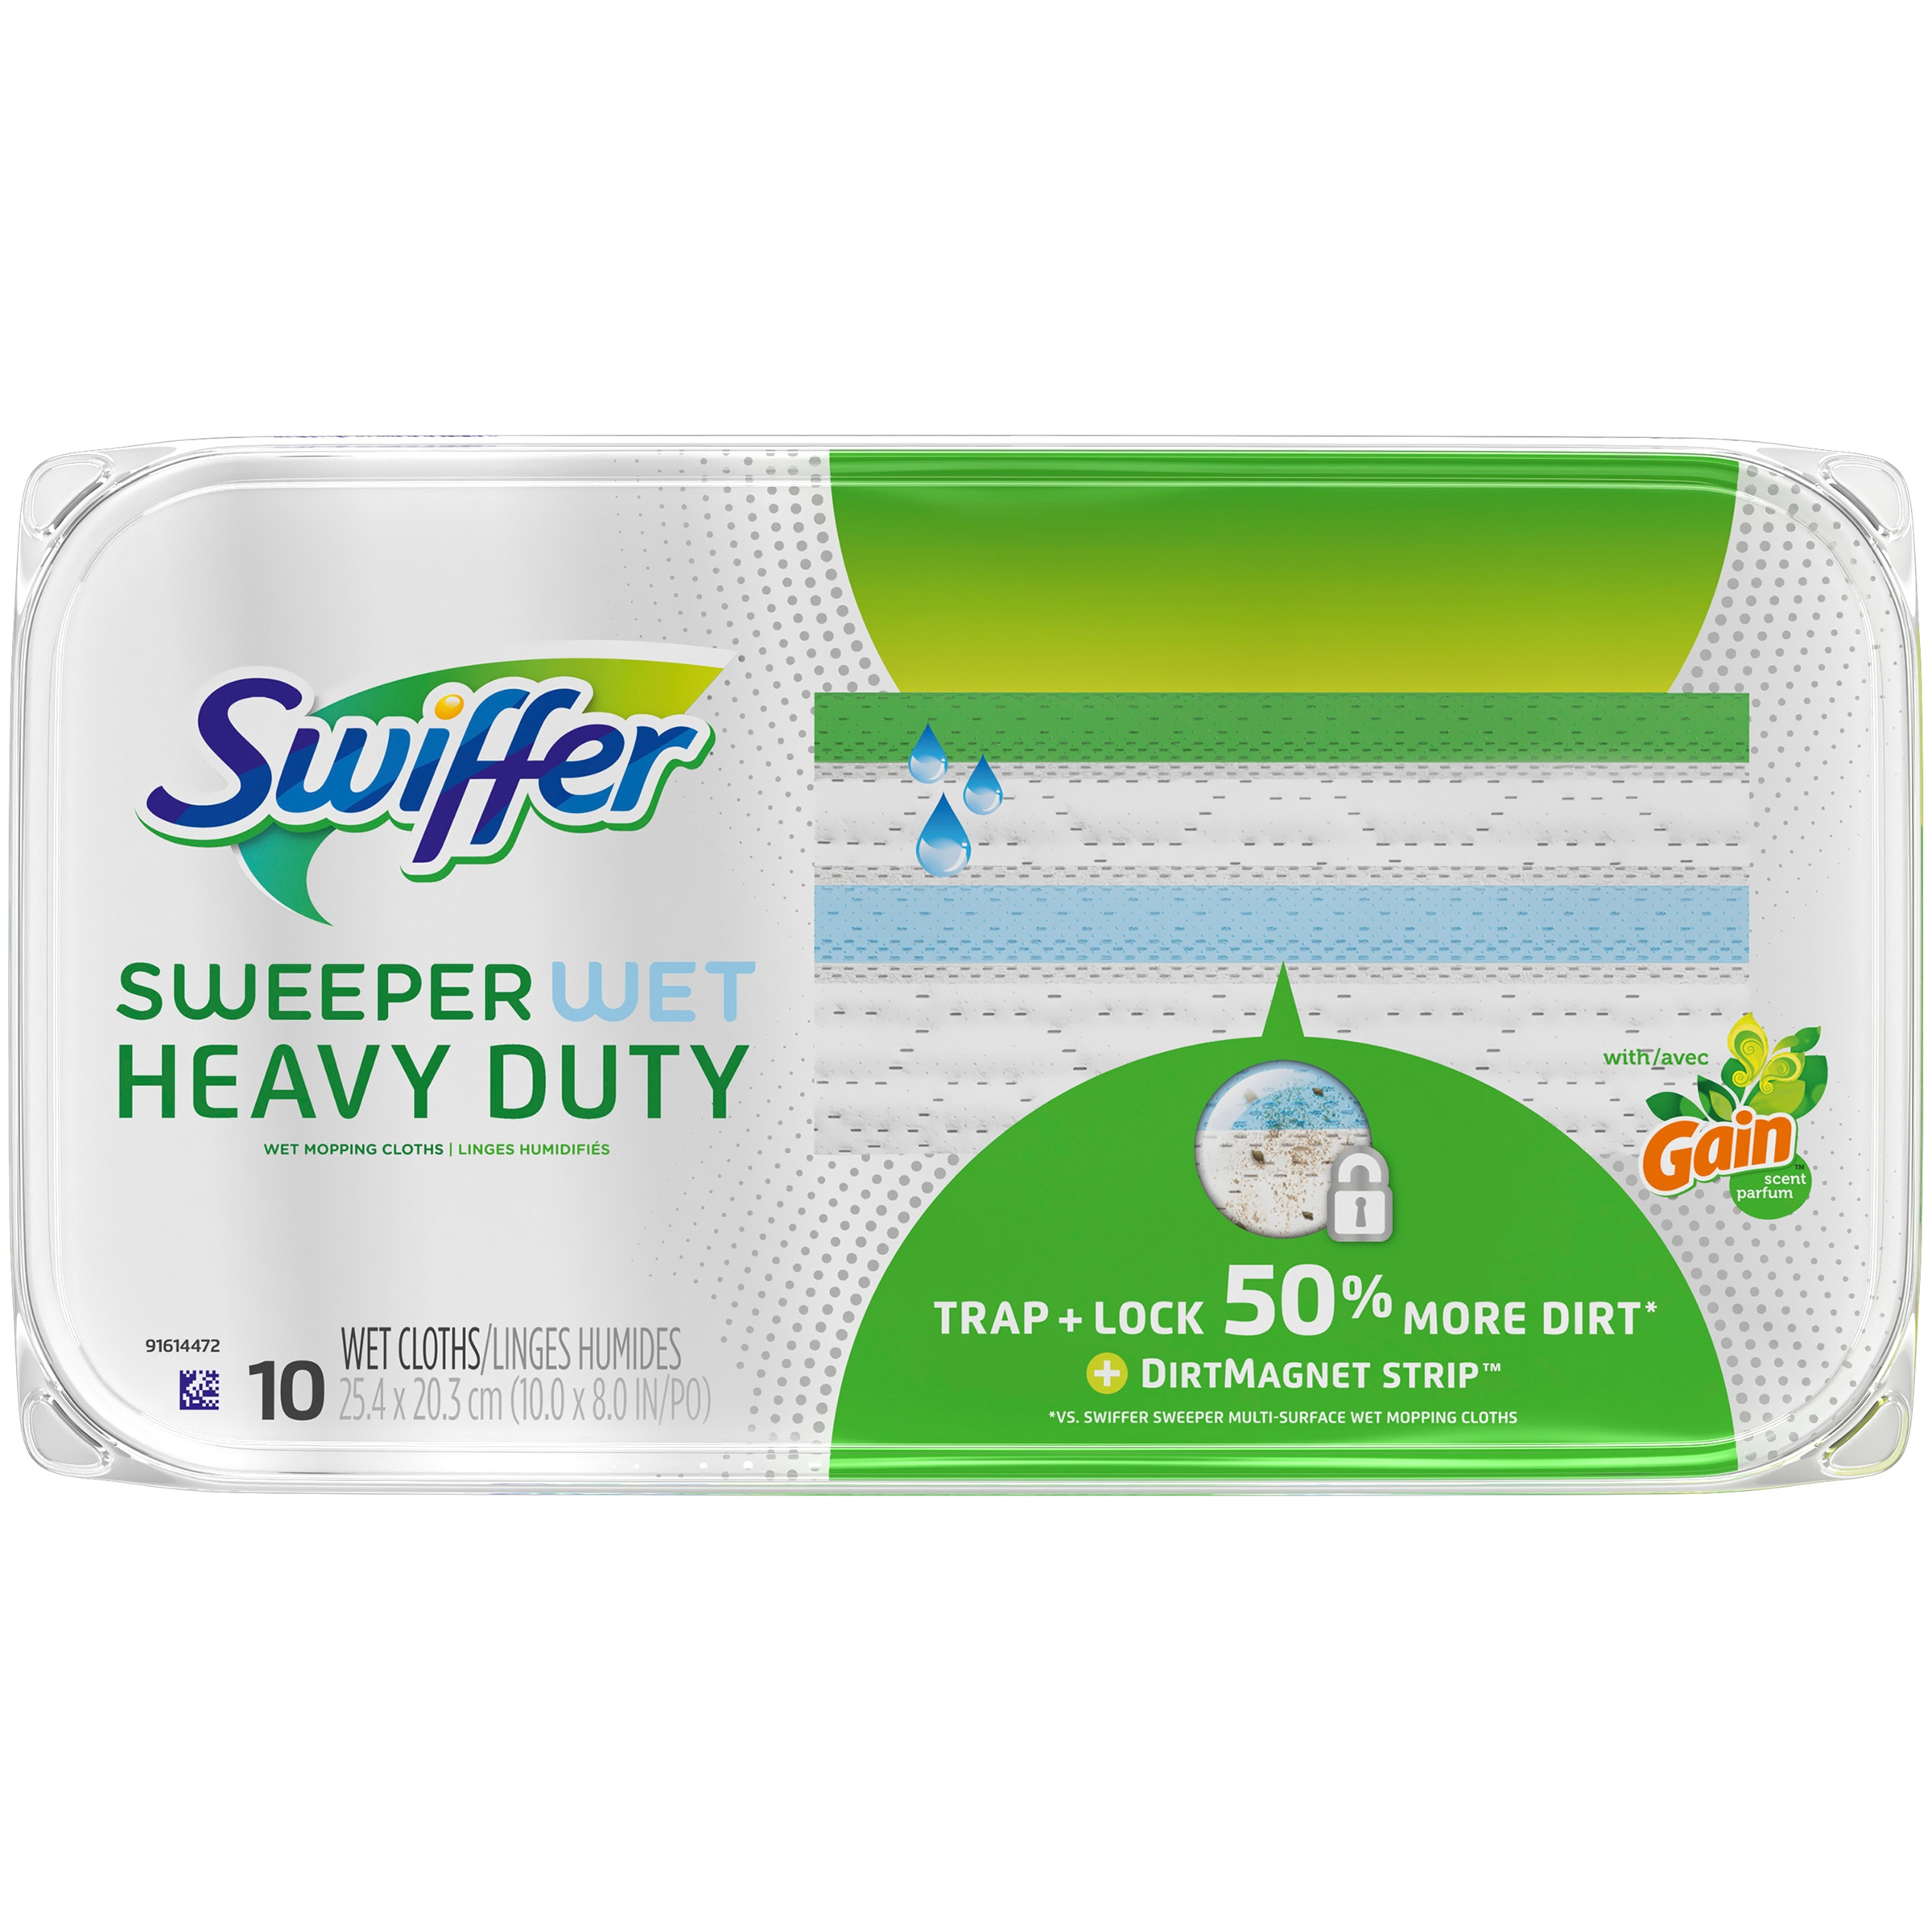 Swiffer Sweeper Wet, Heavy Duty Mopping Cloths, Original Gain Scent, 10 count